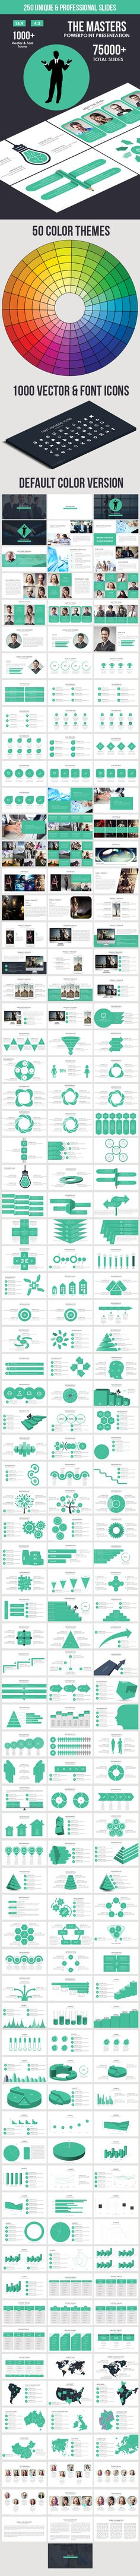 The Masters Powerpoint Presentation Template. Download here: https://graphicriver.net/item/the-masters-powerpoint-presentation-template/17001908?ref=ksioks